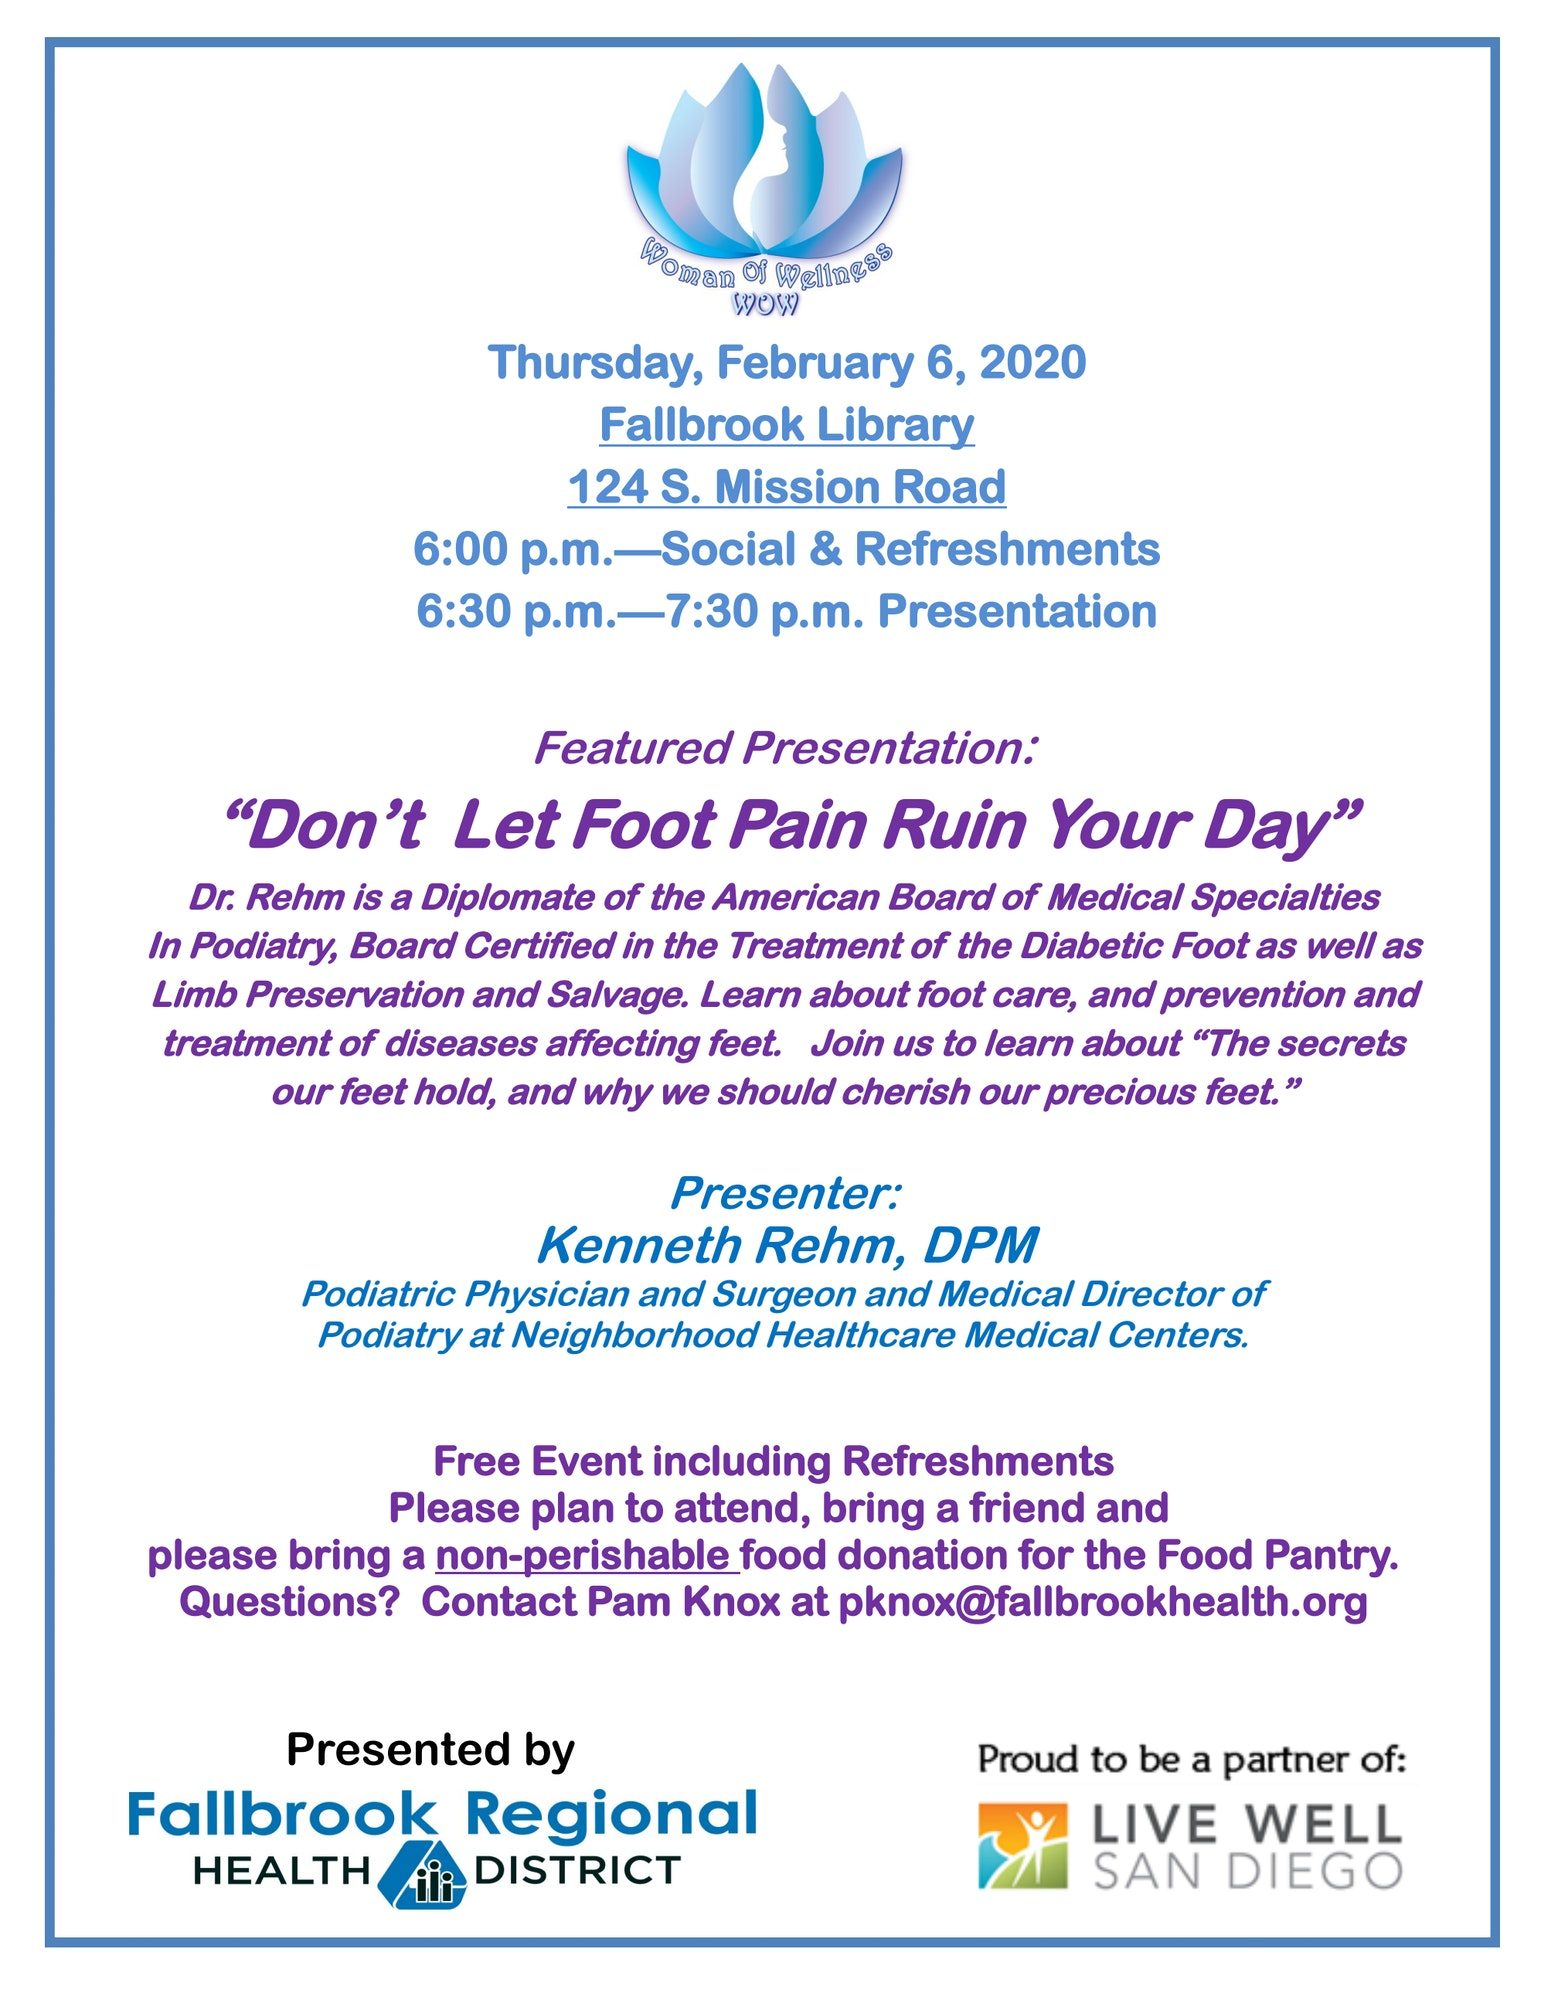 Woman of Wellness Presentation: Dont let foot pain ruin your day by Doctor Kenneth Rehm. Thursday, February 6th, 6:00pm-6:30pm Refreshments. Presentation from 6:30pm-7:30pm at the Fallbrook Branch Library. Questions, contact Pam Knox at pknox@fallbrookhealth.org